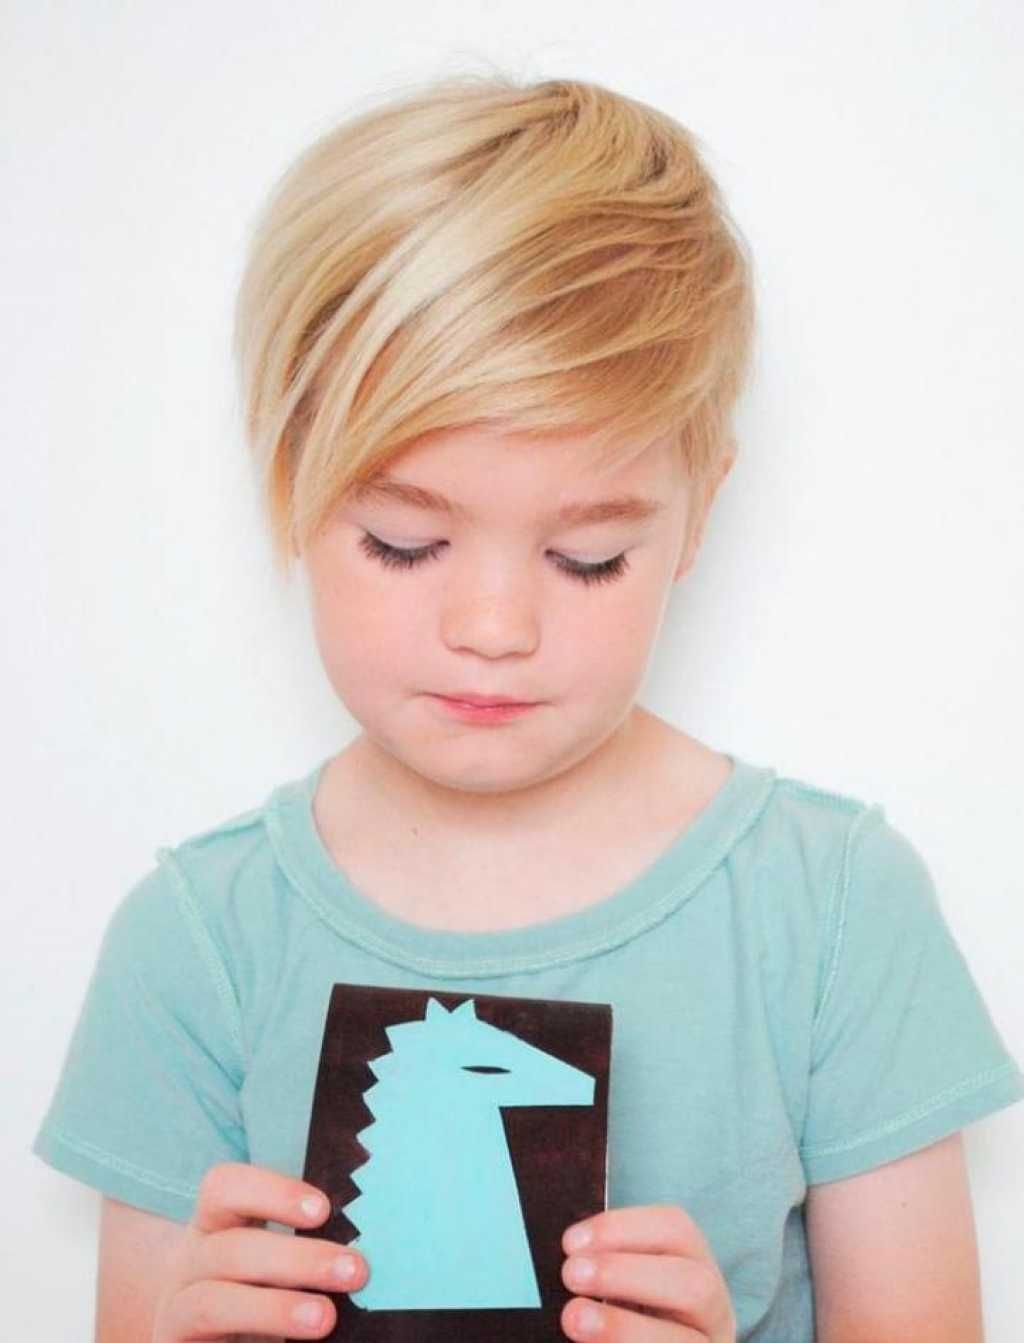 Trendy hairstyle for a little girl one1lady hair hairs unbelievable cute and edgy short girl haircut short hairstyles for little girls the post cute and edgy short girl haircut short hairstyles for little girls winobraniefo Image collections